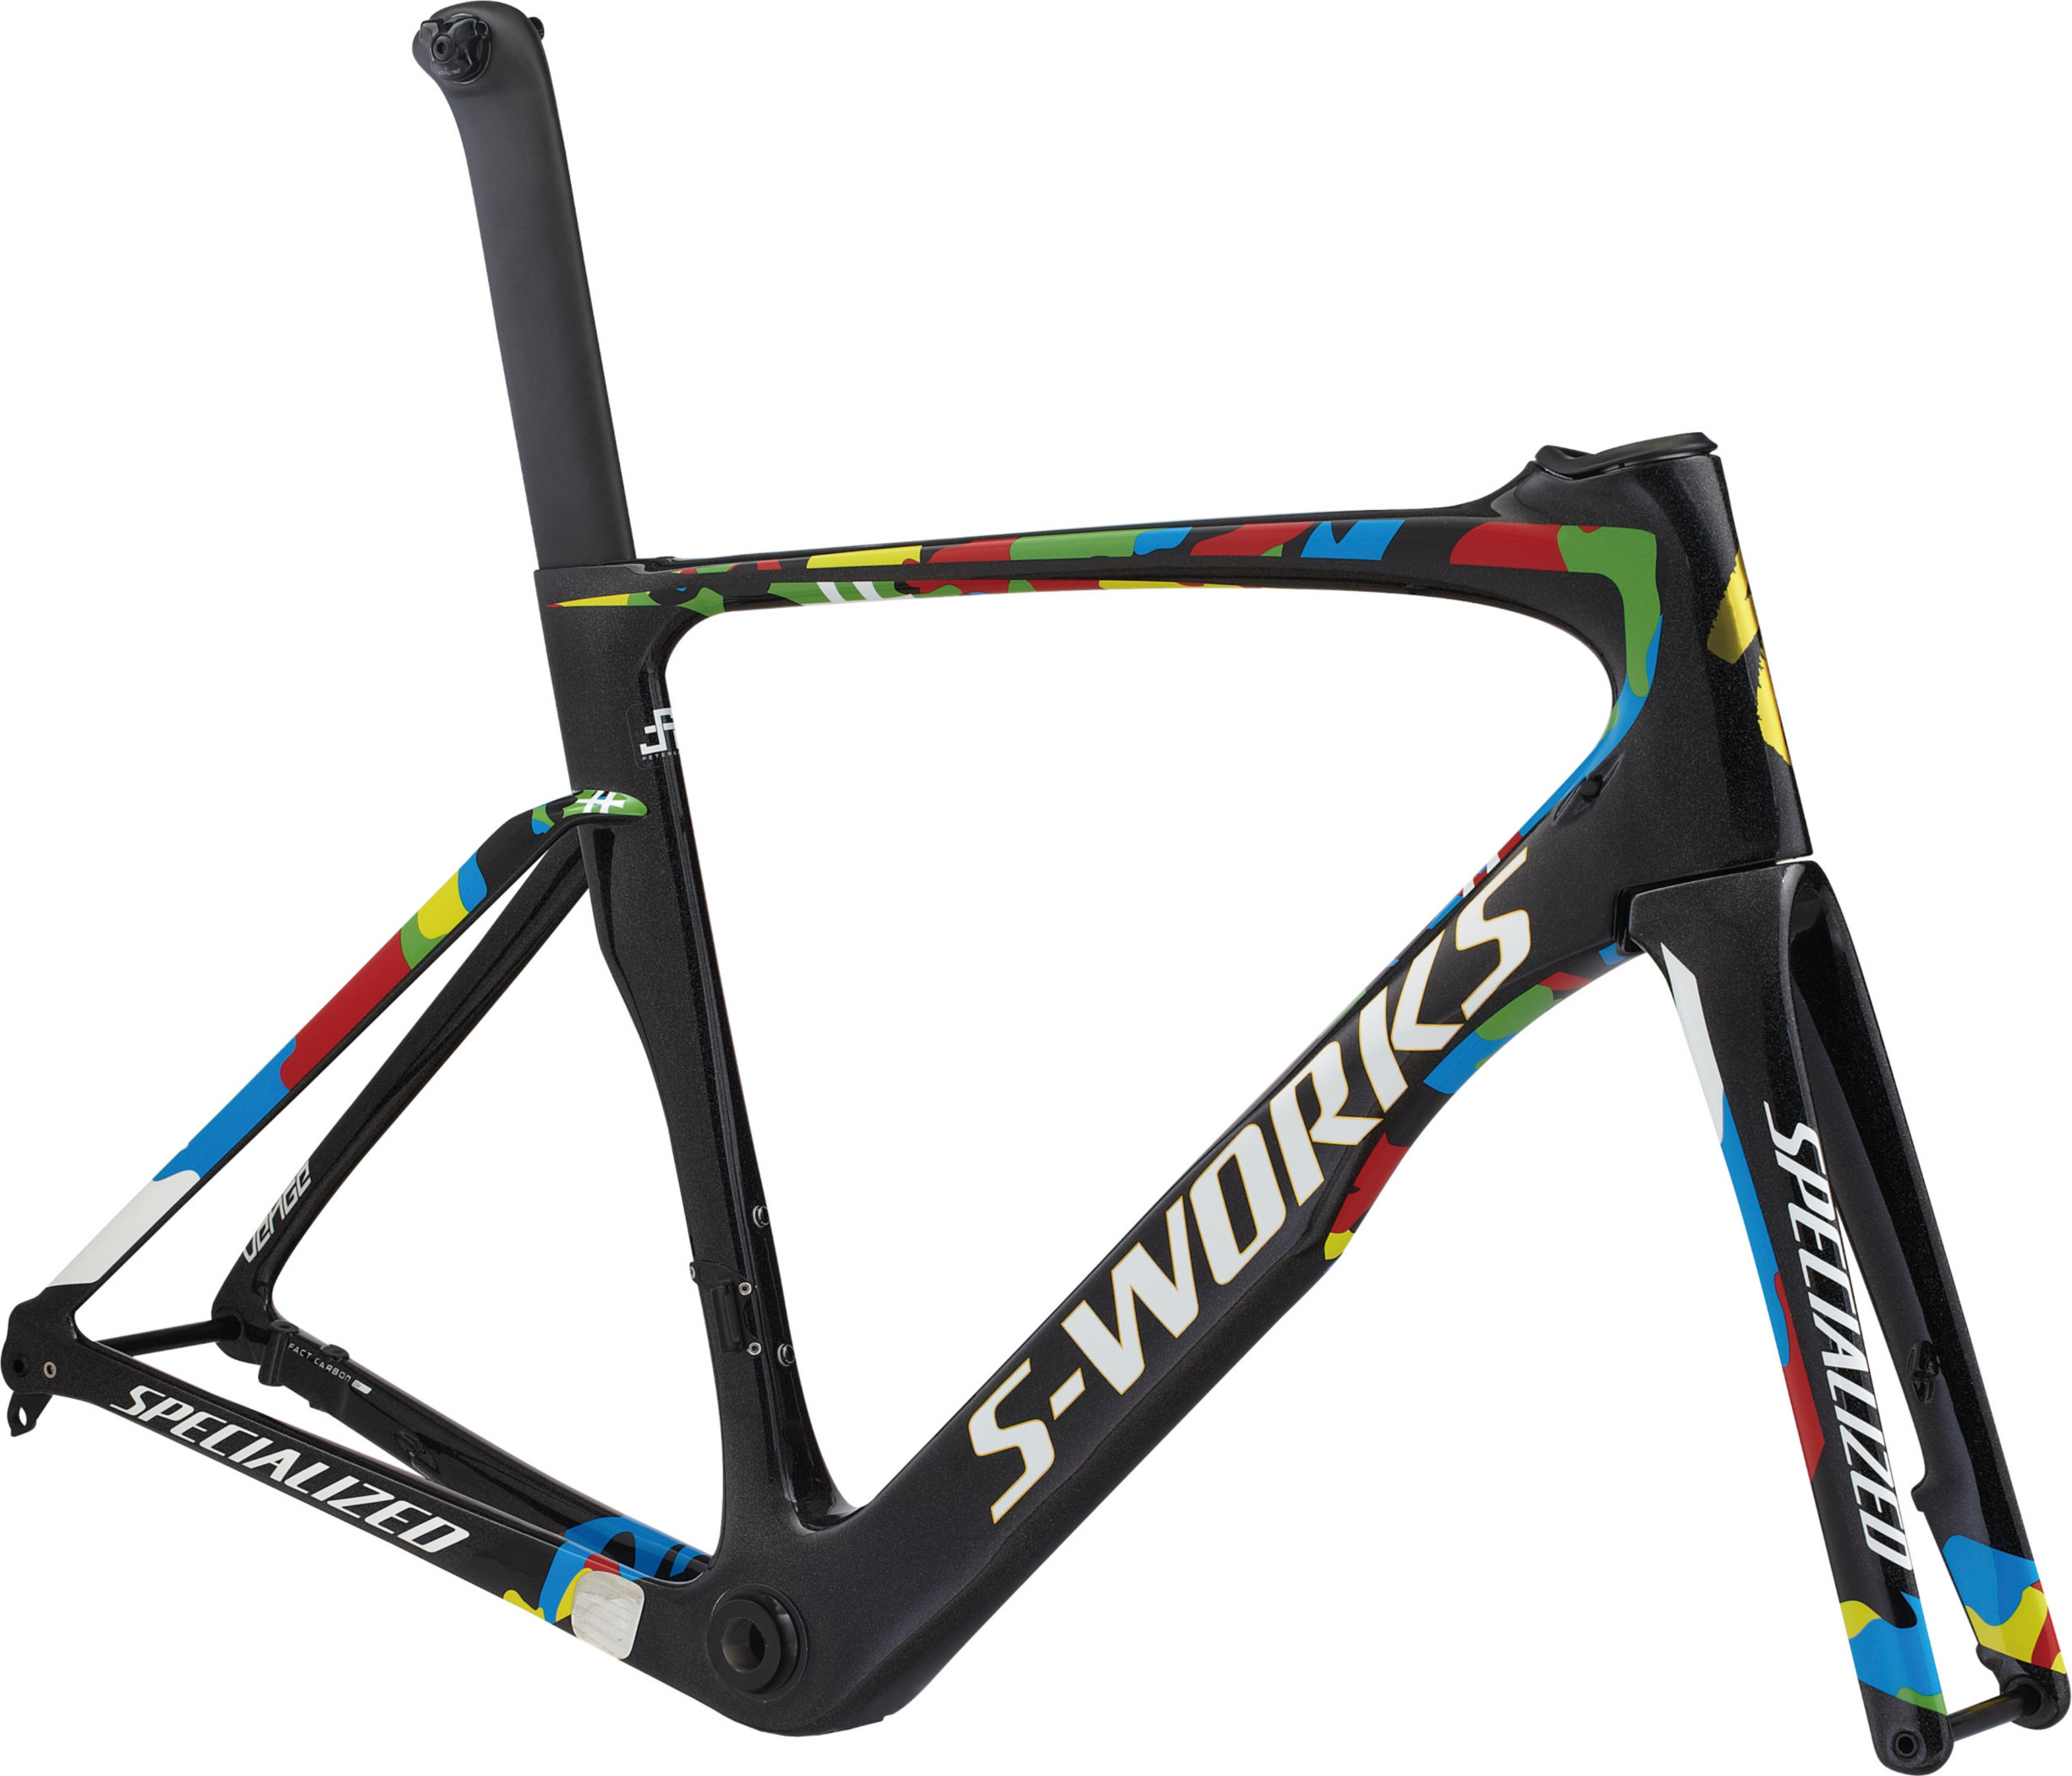 SPECIALIZED SW VENGE DISC VIAS FRMSET SAGAN WC 61 - SPECIALIZED SW VENGE DISC VIAS FRMSET SAGAN WC 61